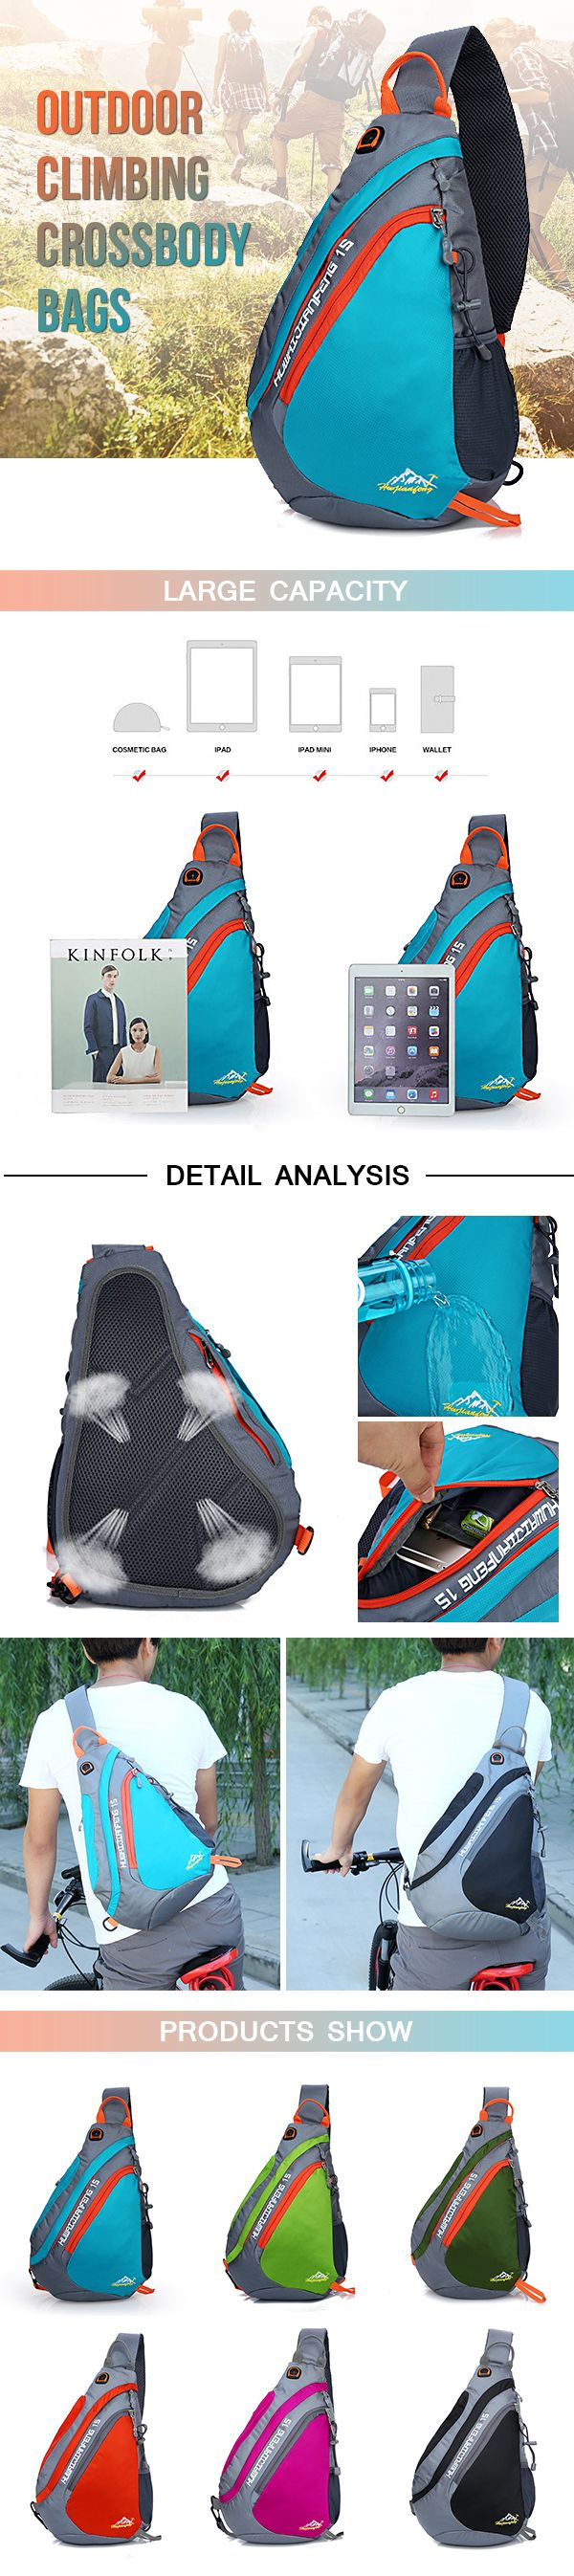 US$18.69#Women Men Nylon Light Waterproof Outdoor Climbing Chest Bag Shoulder Bag Crossbody Bags